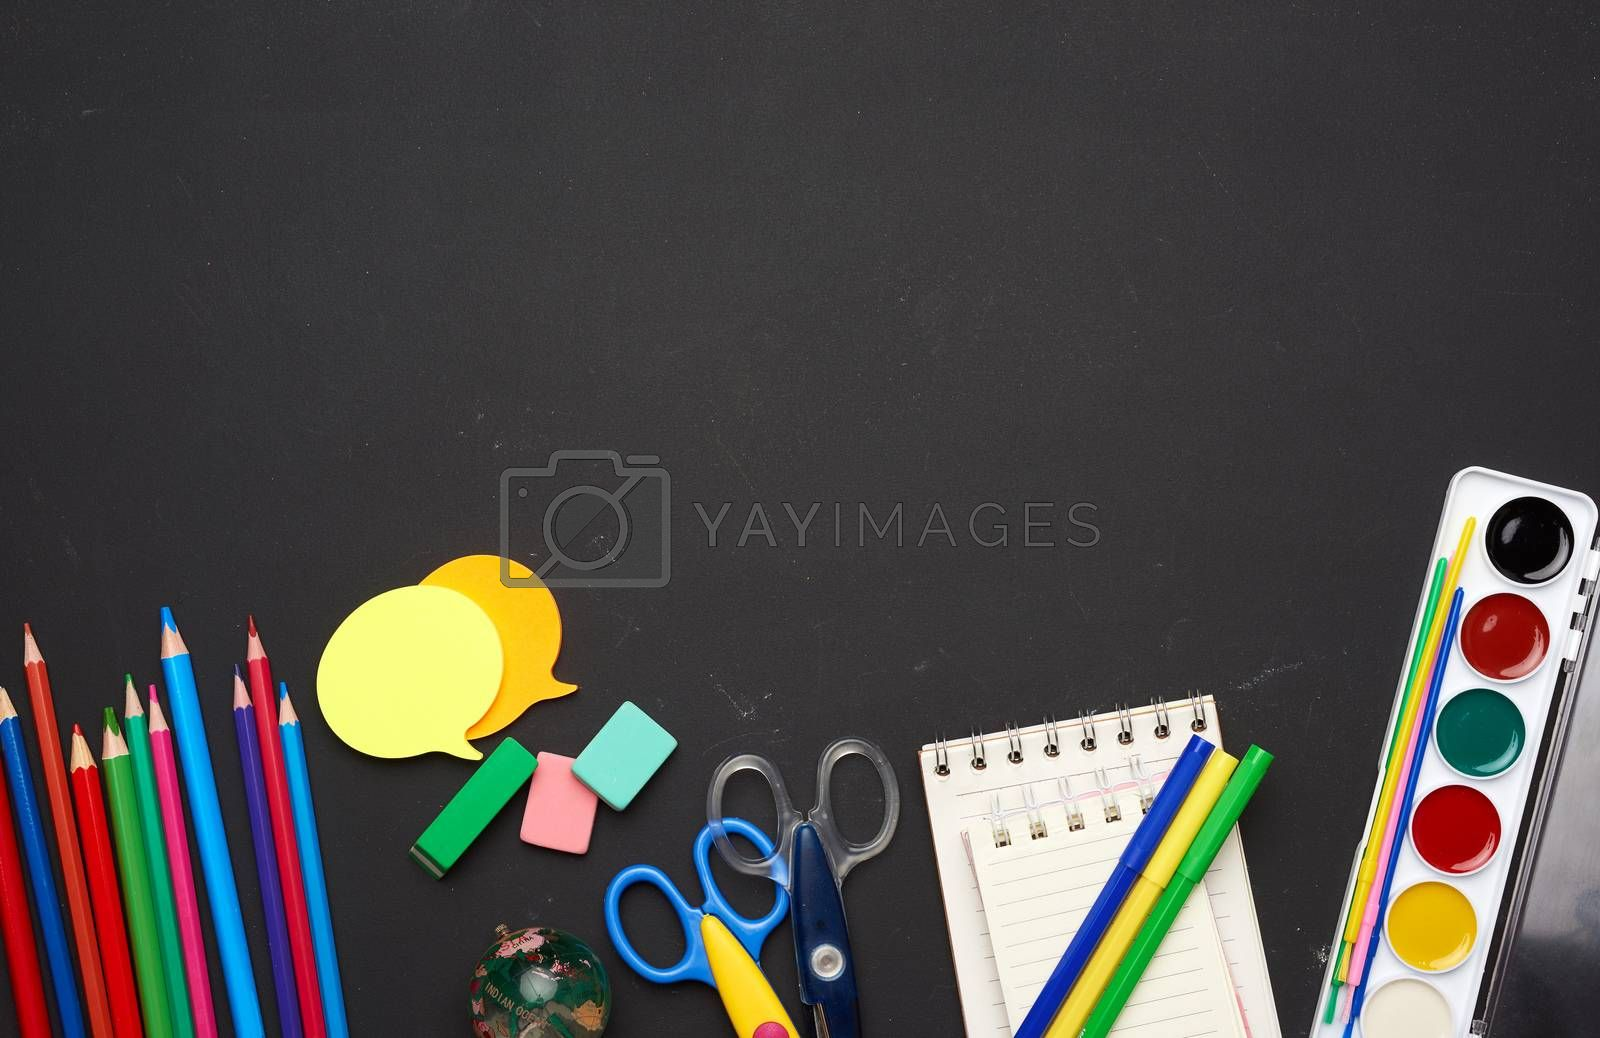 colorful wooden pencils, scissors, notepads and paint for drawing on a blank black chalk board, school stationery, copy space